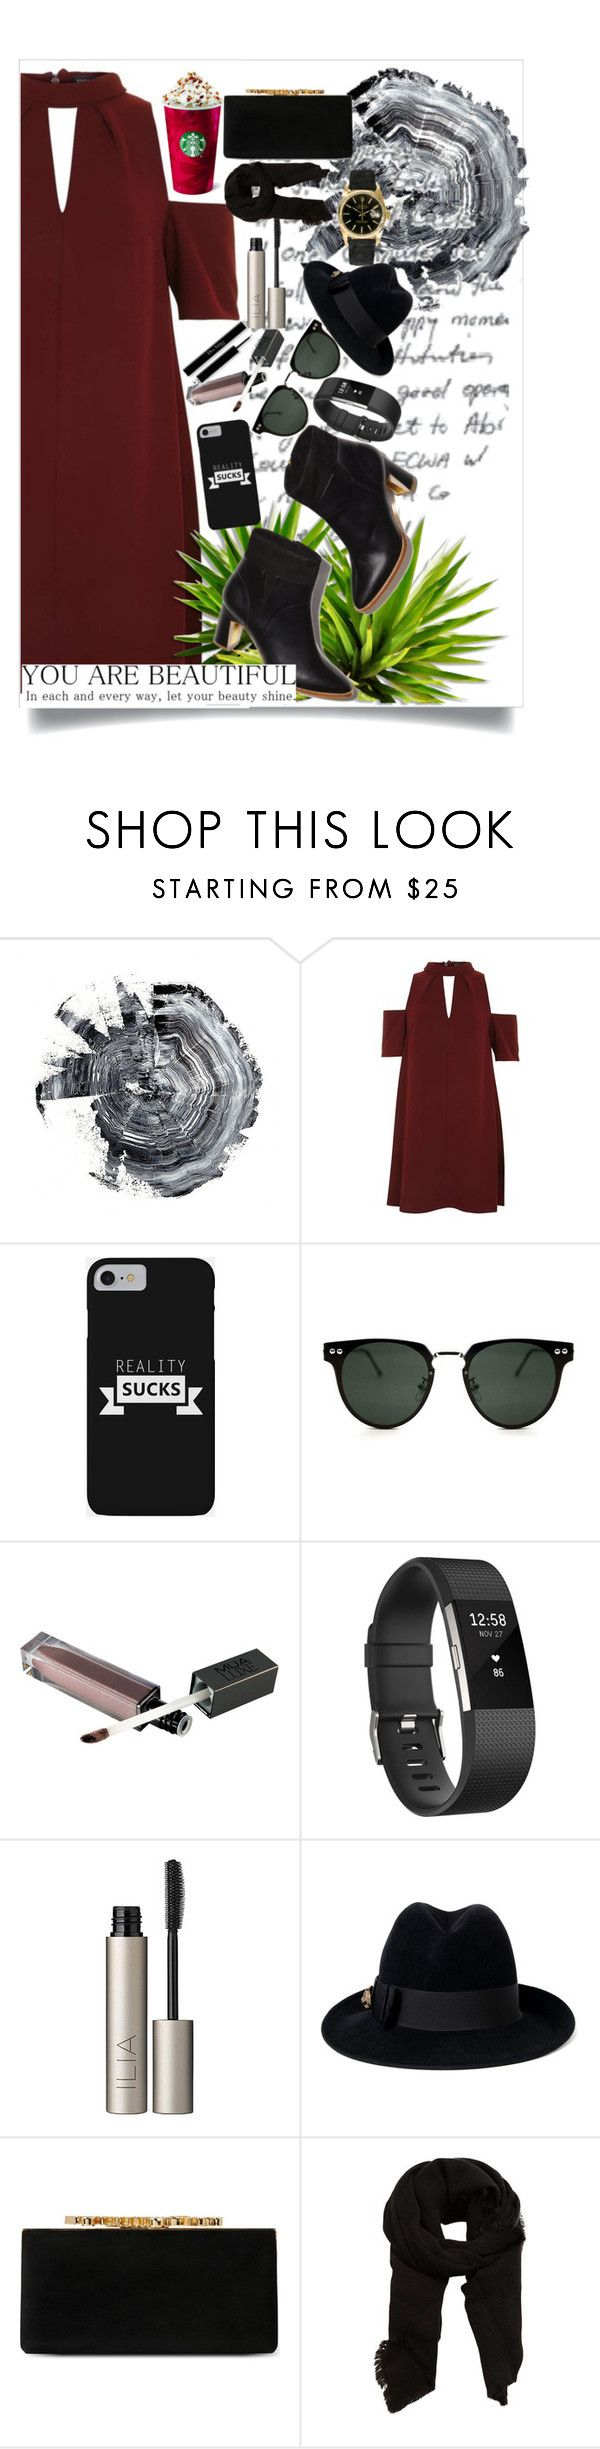 """""""You are beatiful"""" by marii-96-1 ❤ liked on Polyvore featuring Topshop, Spitfire, Fitbit, Ilia, Gucci, Jimmy Choo, MANGO and Rolex"""